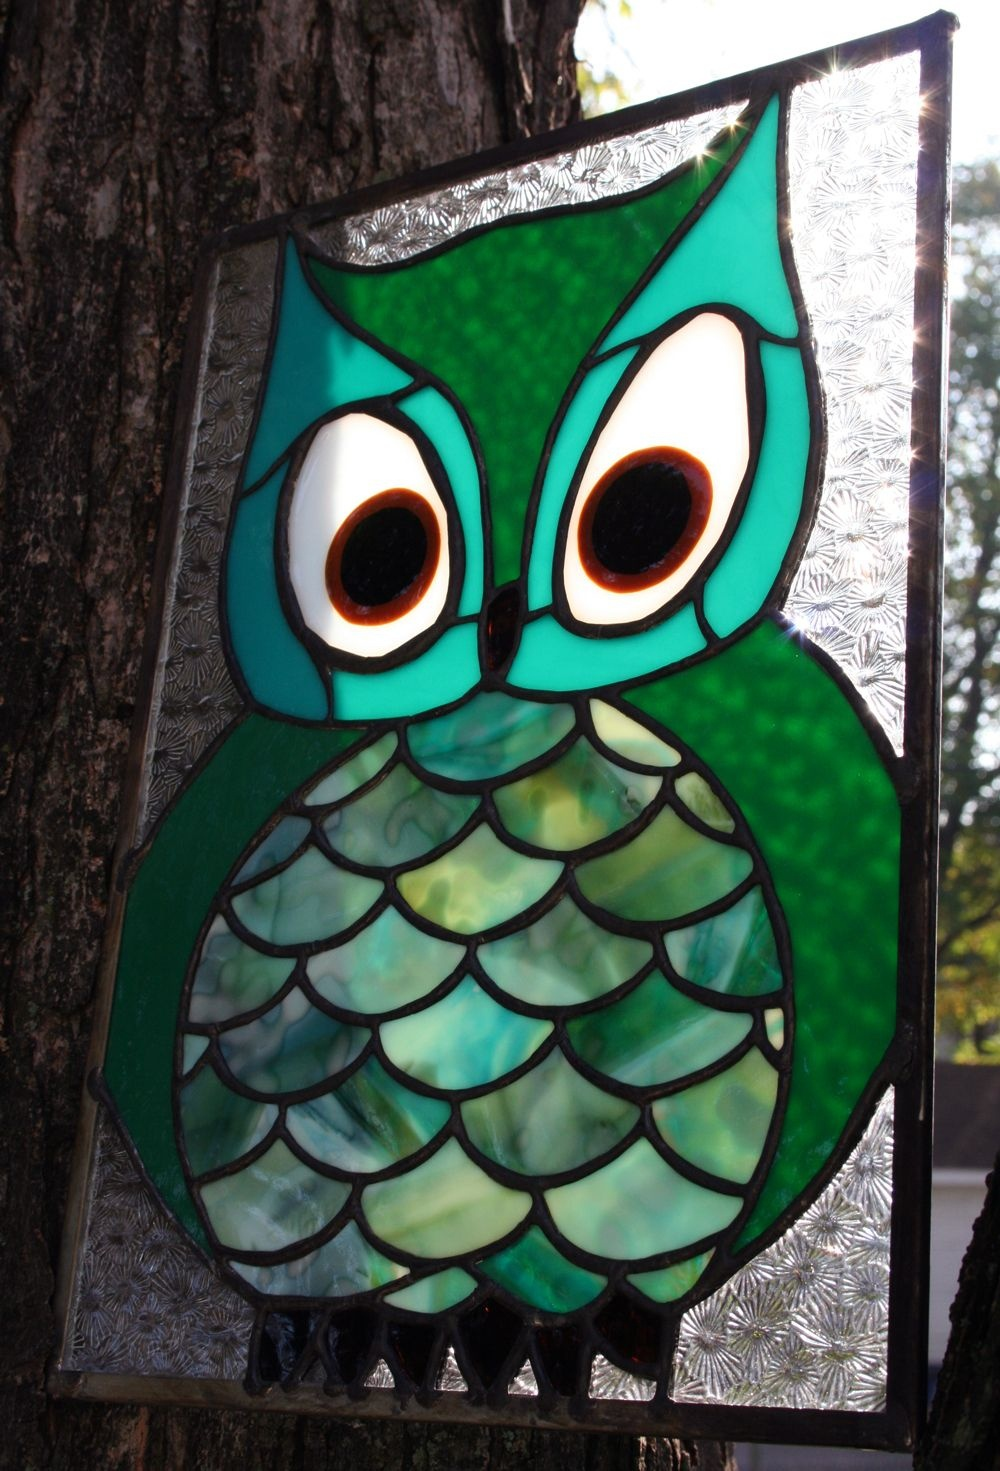 Free Printable Stained Glass Patterns Owls | Stained Glass Owl - Free Printable Stained Glass Patterns